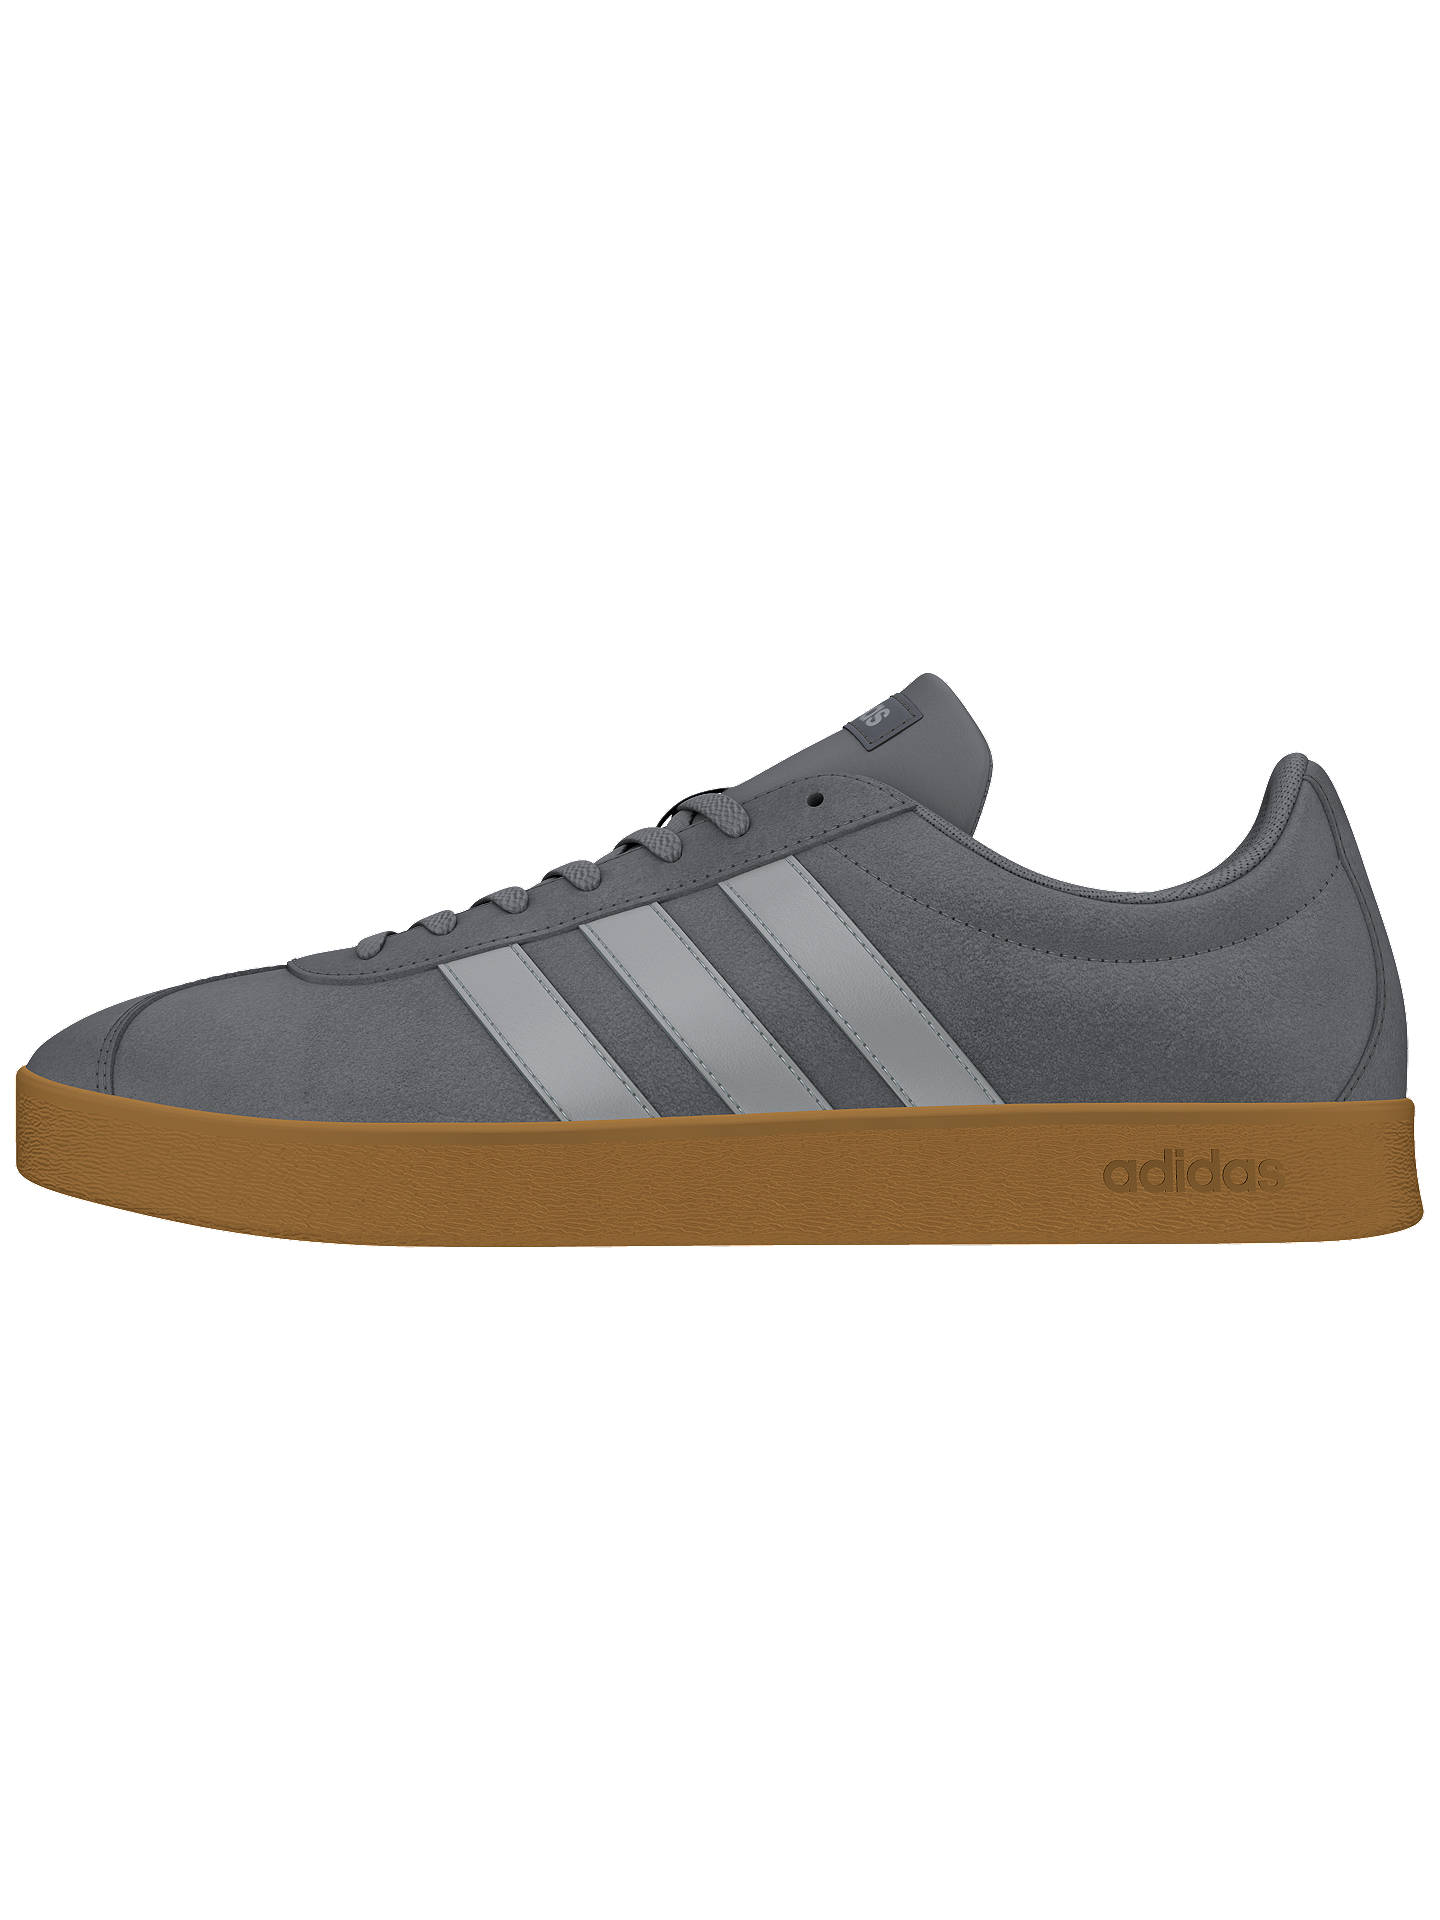 Neo Grey Court John 2 Adidas Trainers Men's Lewis At Vl 0 Suede d88wI7q